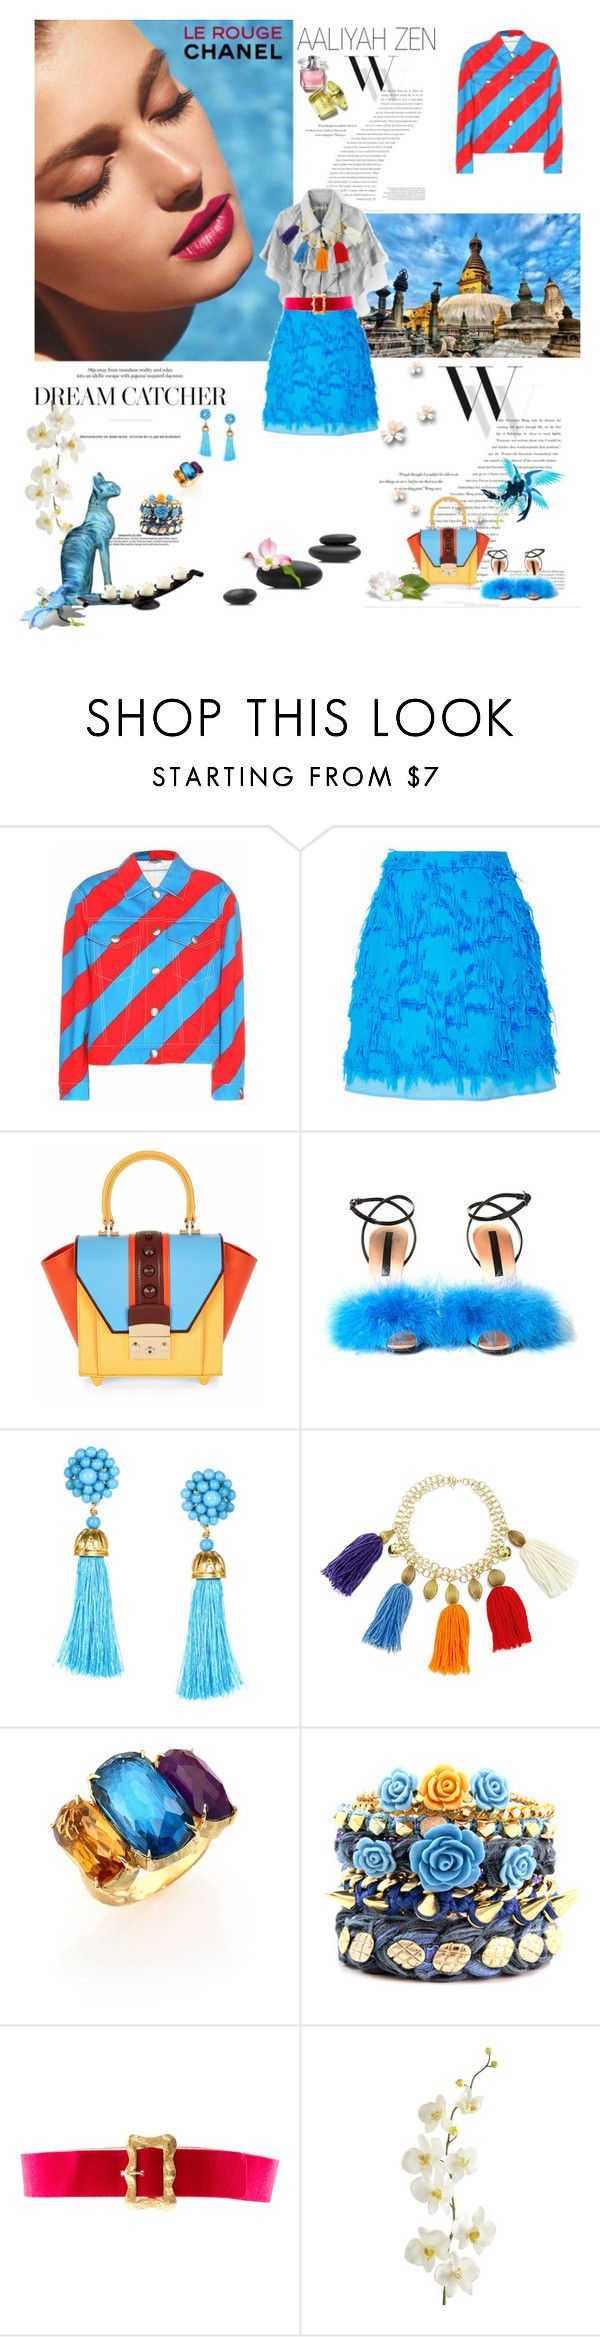 """Aaliyah 2016-075"" by aaliyah ❤ liked on Polyvore featuring Balenciaga, Atlantis, Miu Miu, Marco de Vincenzo, Stella Jean, Marco Bicego, Ettika, Chanel, Pier 1 Imports and Cyan Design"